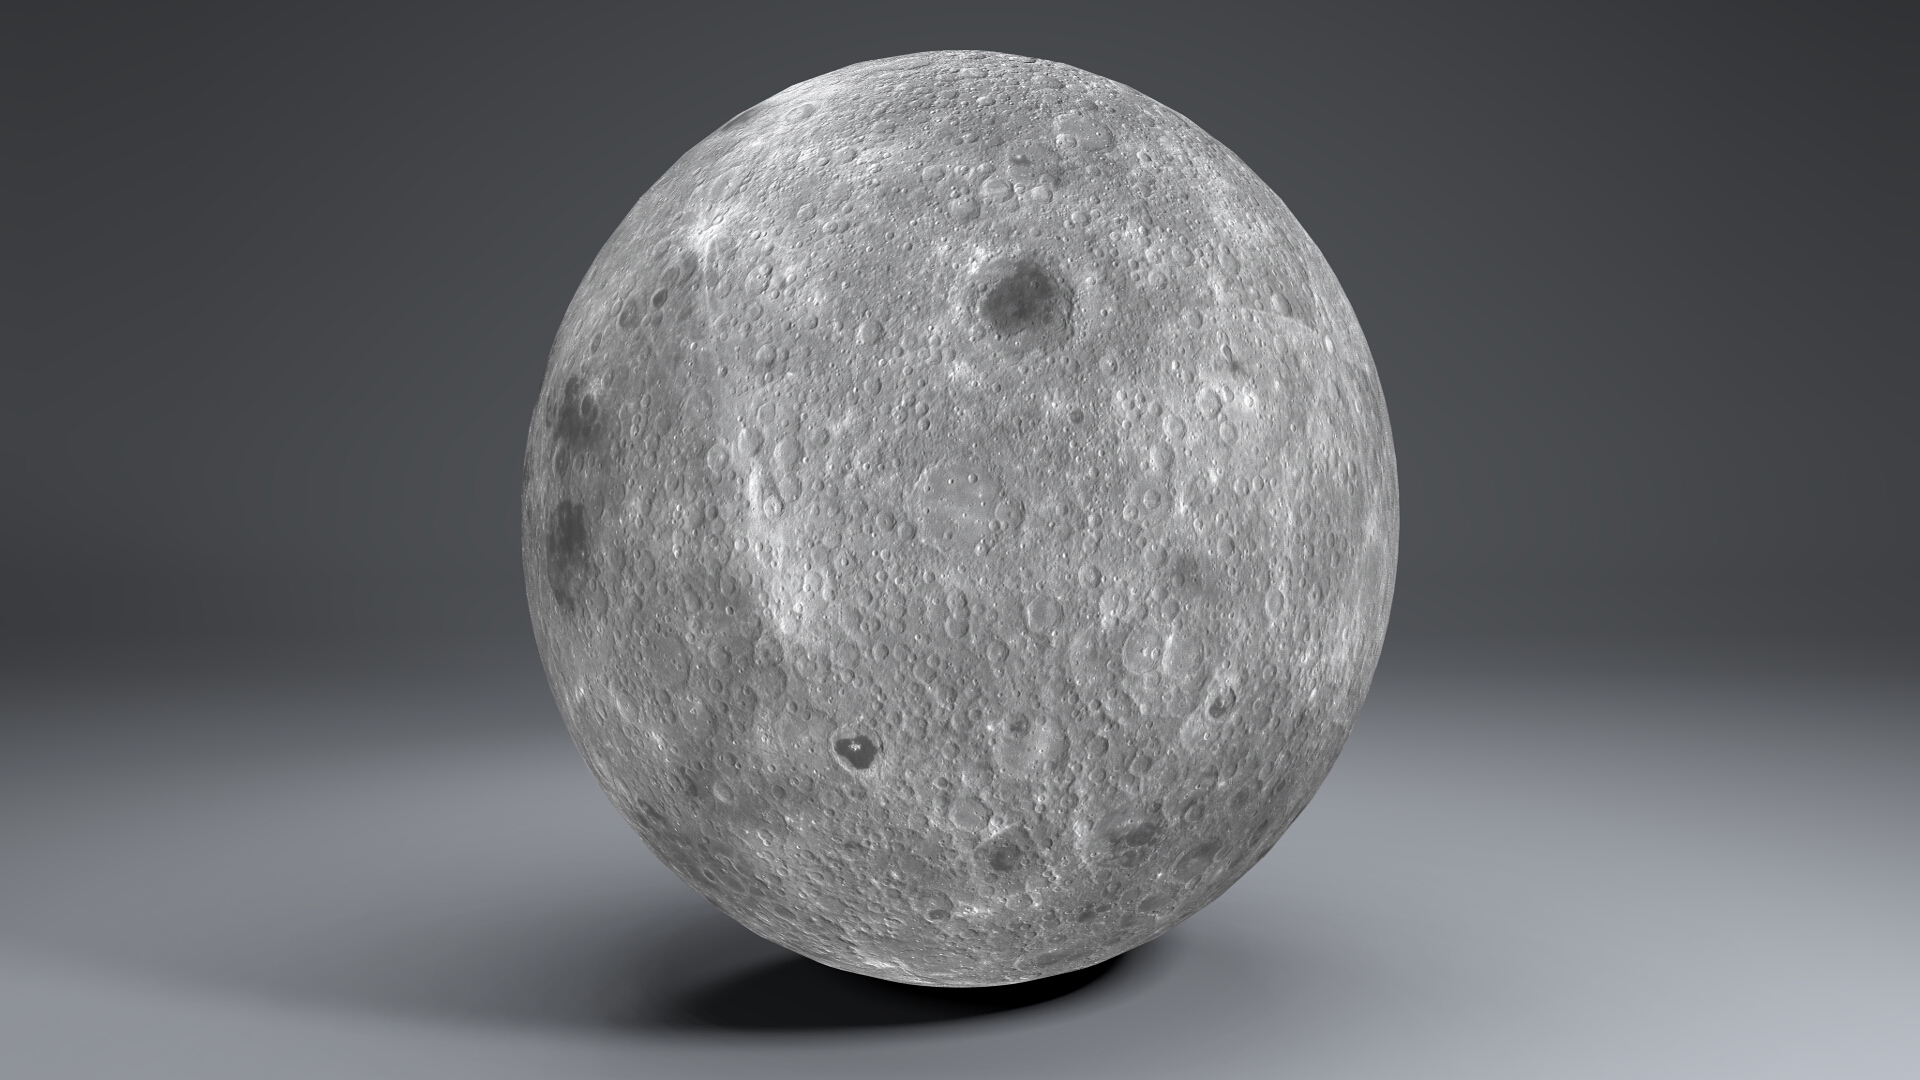 moon globe 11k 3d model 3ds fbx blend dae obj 221925